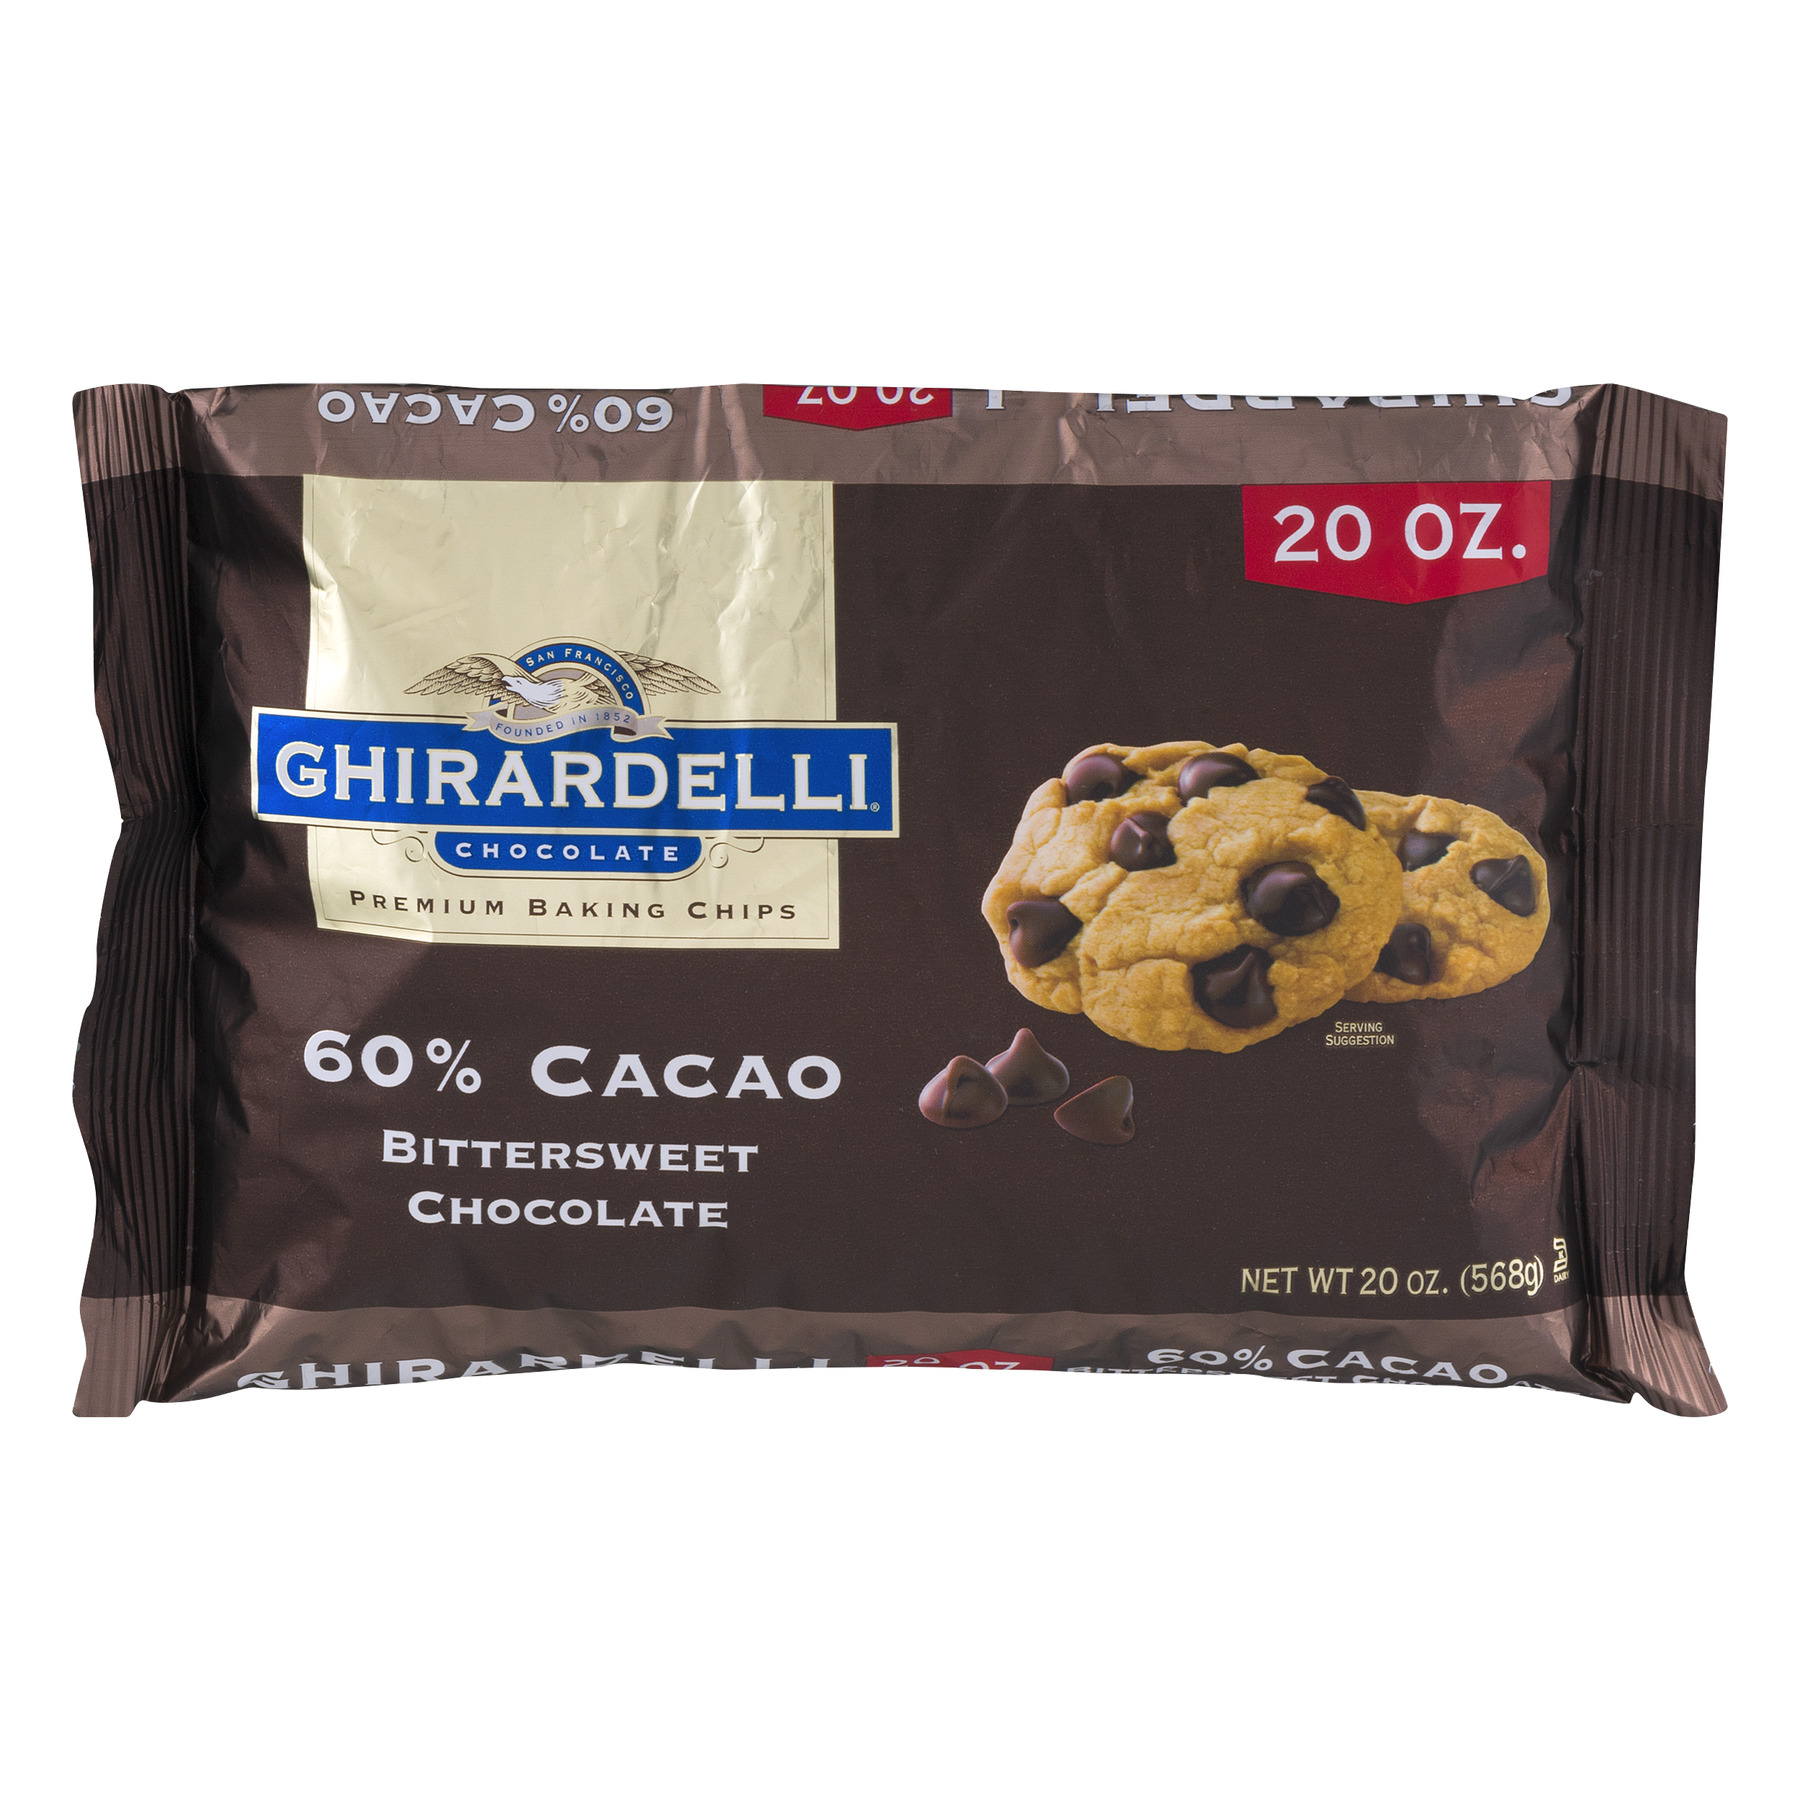 Ghirardelli 60% Cacao Bittersweet Chocolate Baking Chips, 20 oz